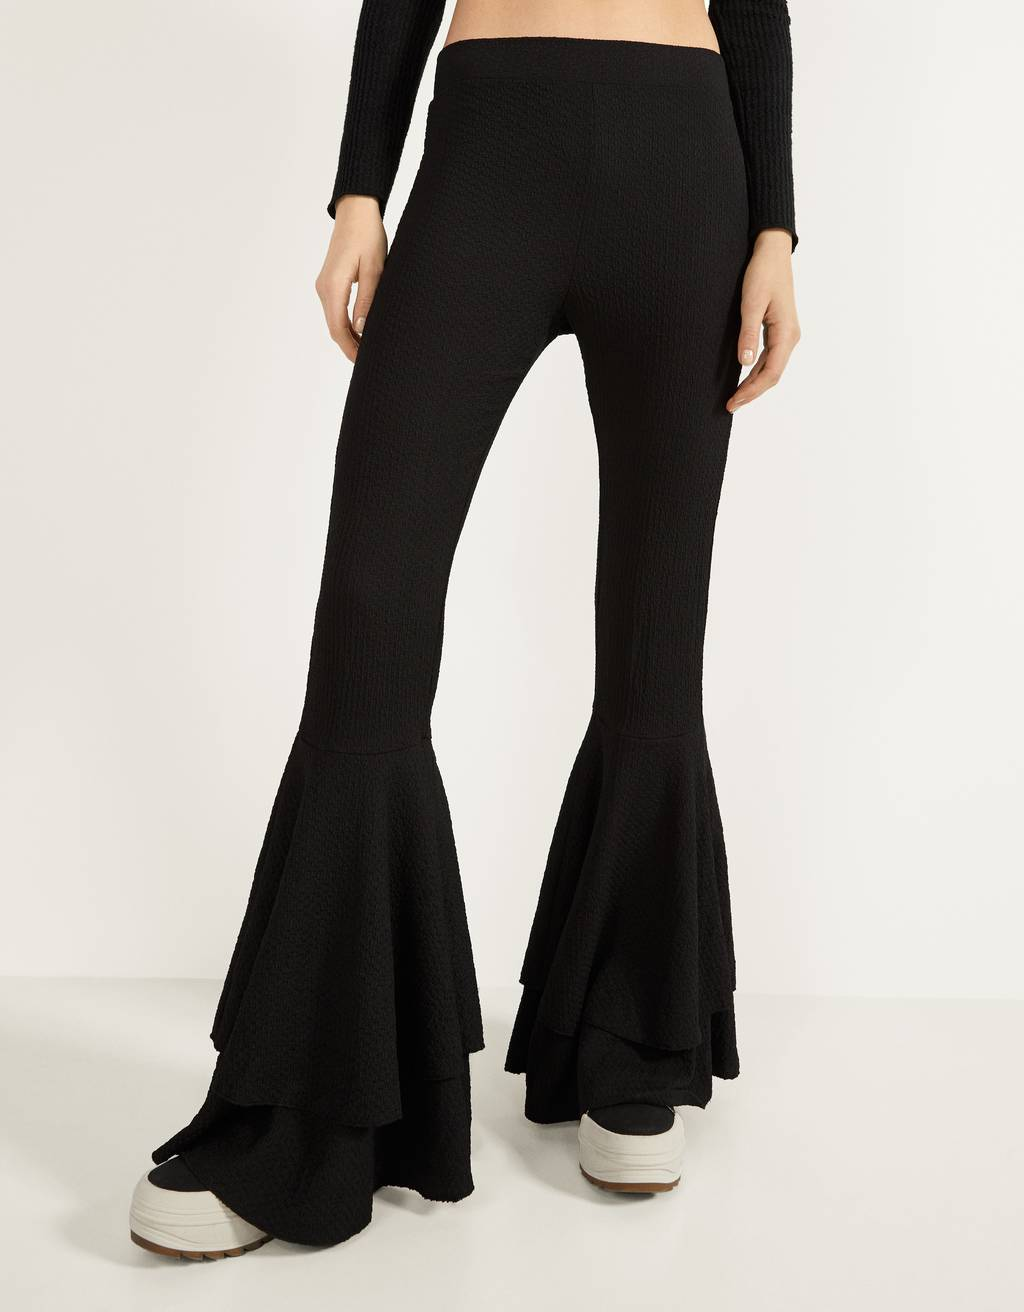 Flare Fit trousers with ruffles